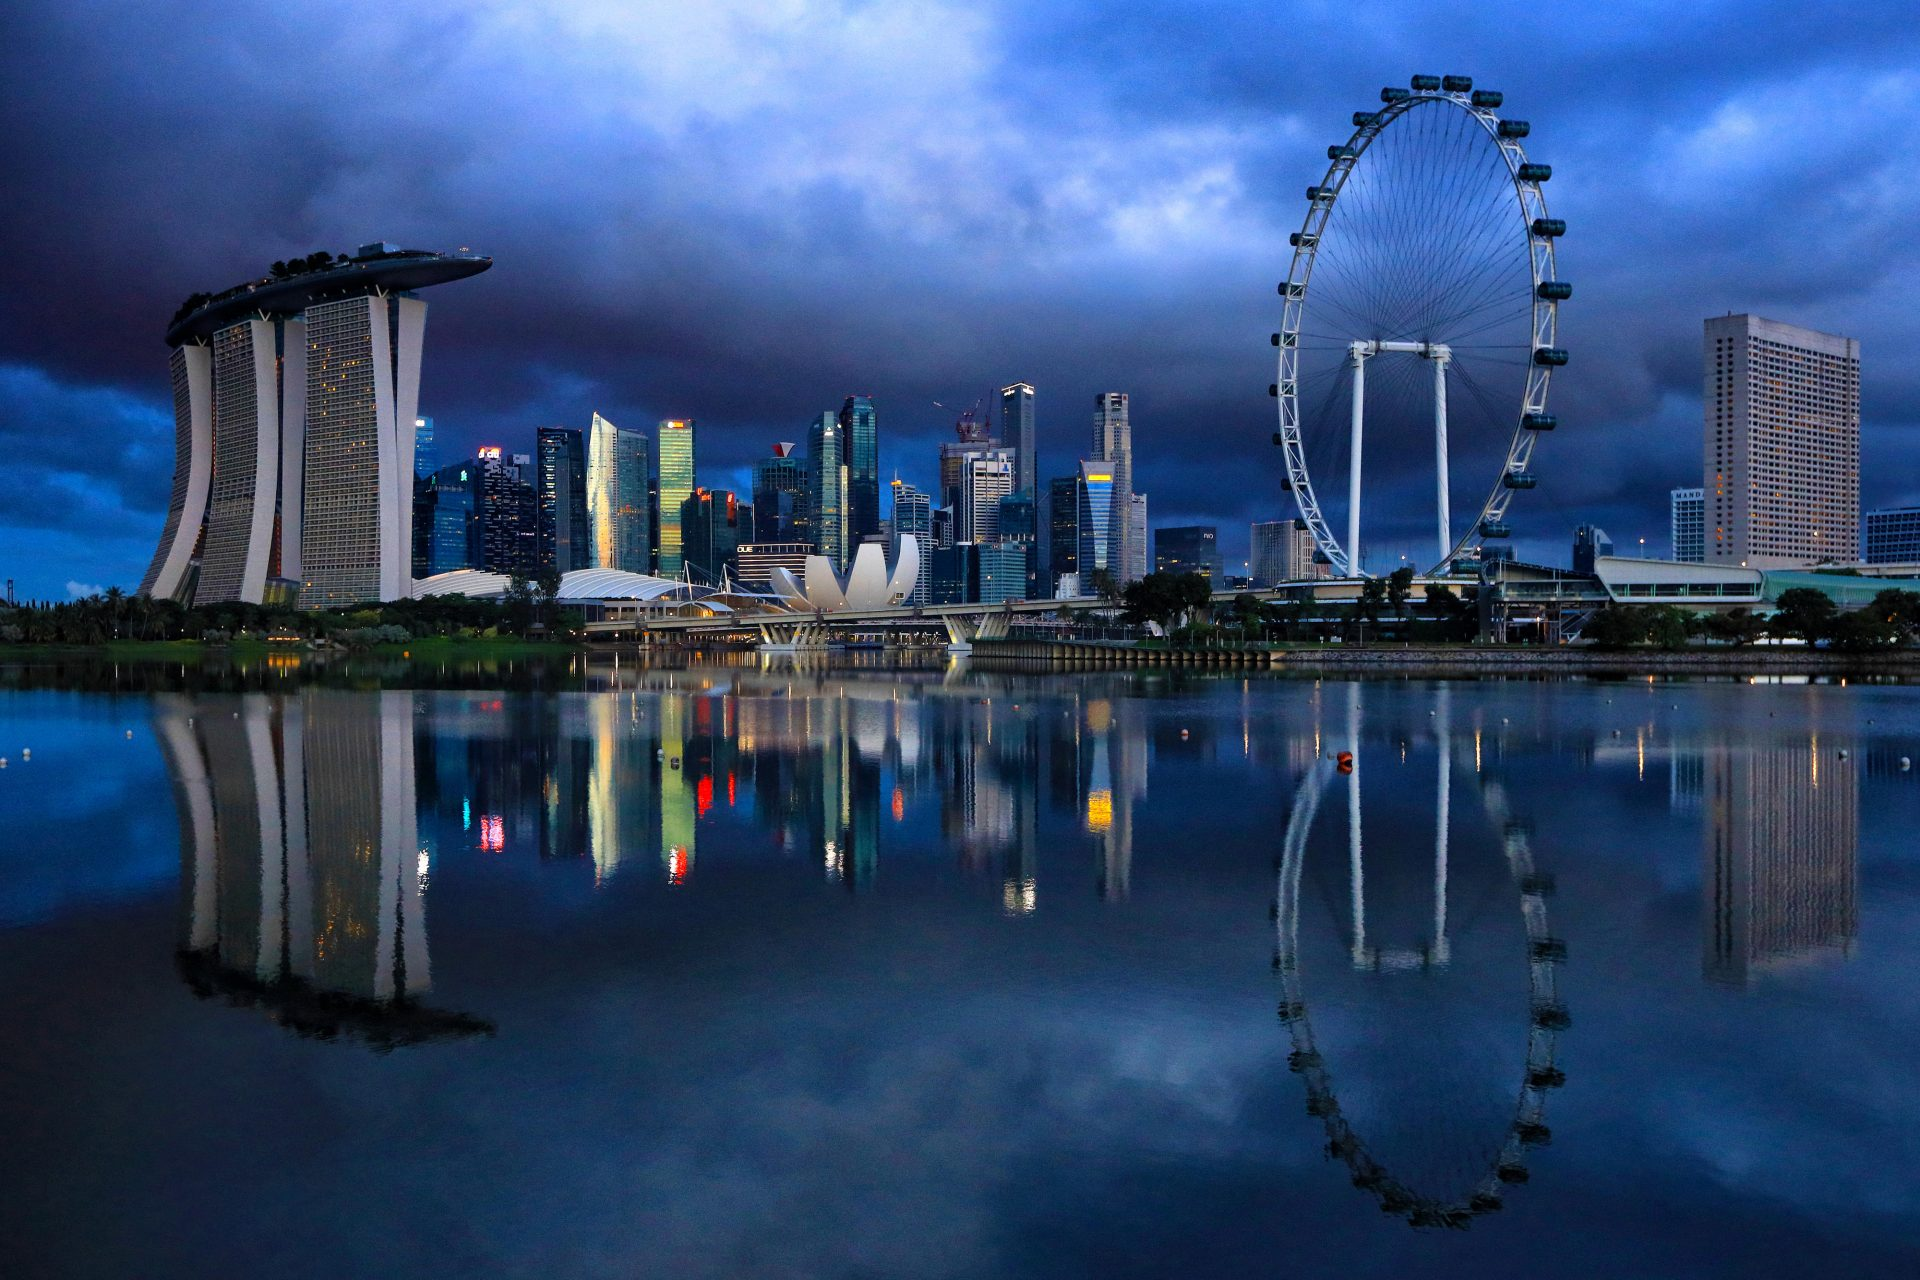 A view of Singapore's waterfront, including (far left) the vast Marina Sands Bay hotel and casino. Photo: Suhaimi Abdullah via Getty Images.